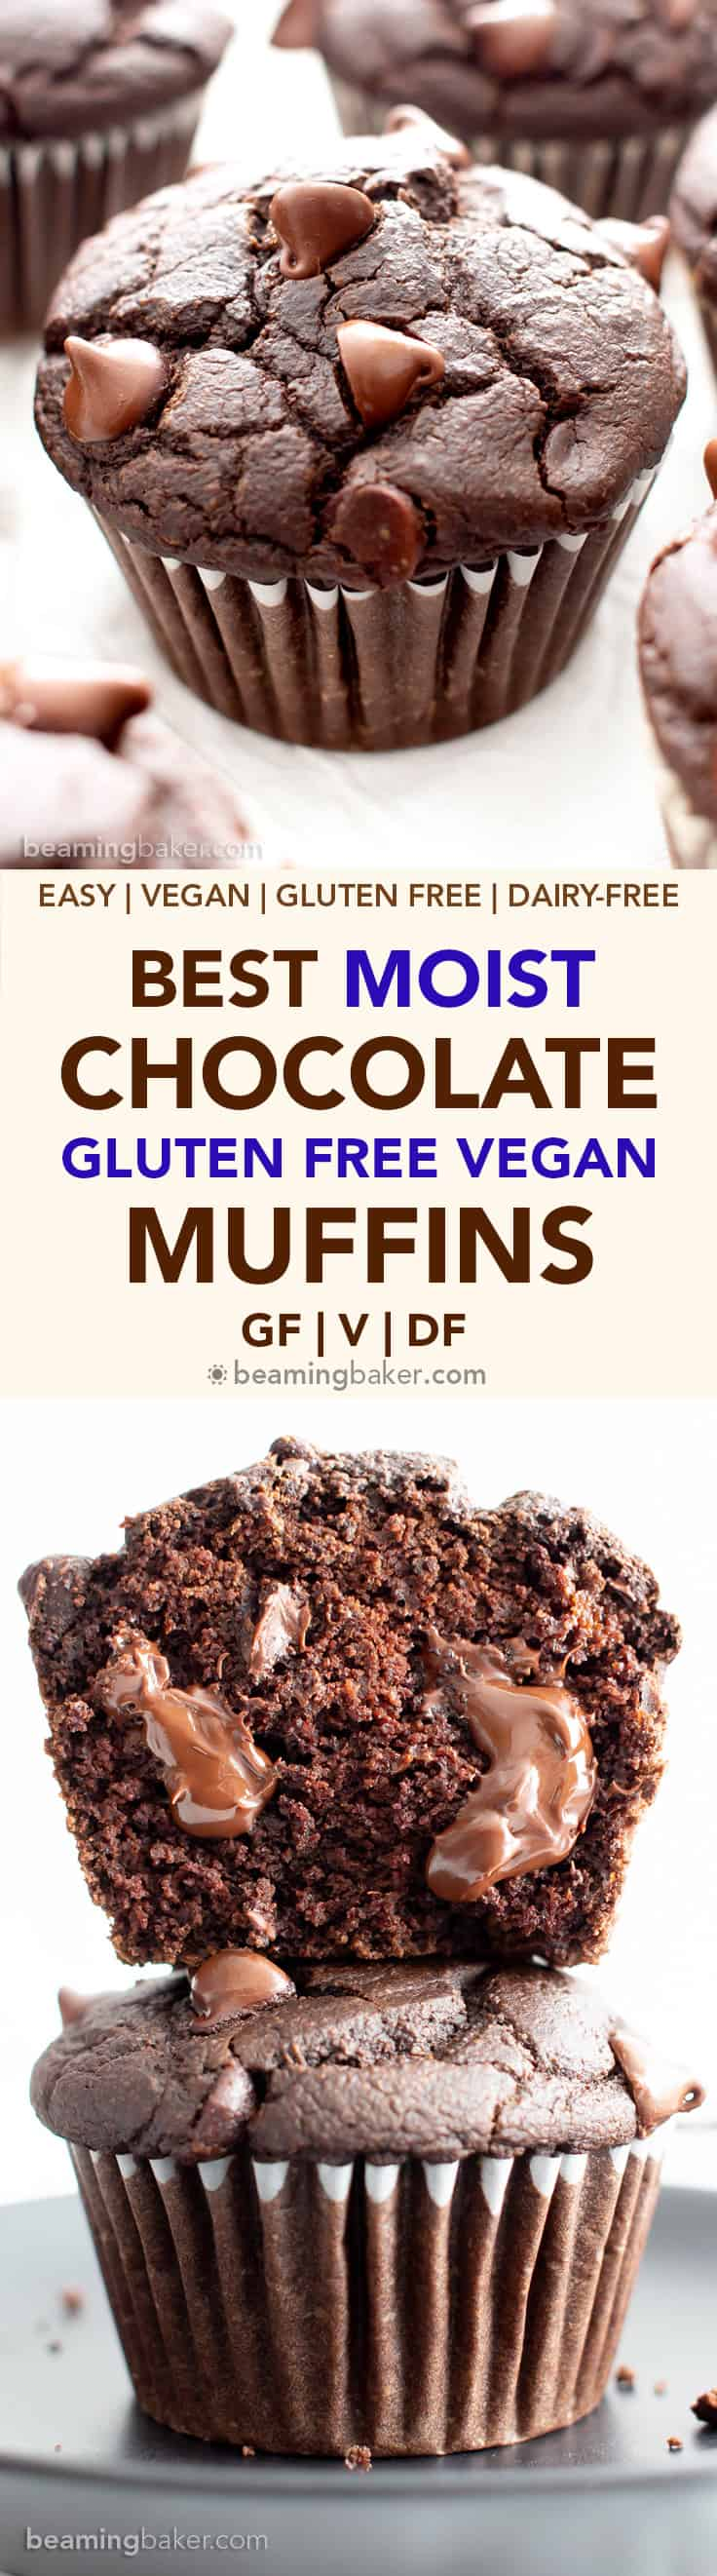 Best Vegan Gluten Free Moist Chocolate Muffins (V, GF): this easy moist gluten free double chocolate muffins recipe is incredible! It's the best vegan chocolate muffins recipe—egg free, healthy ingredients! #Chocolate #Vegan #GlutenFree #Muffins #Healthy | Recipe at BeamingBaker.com